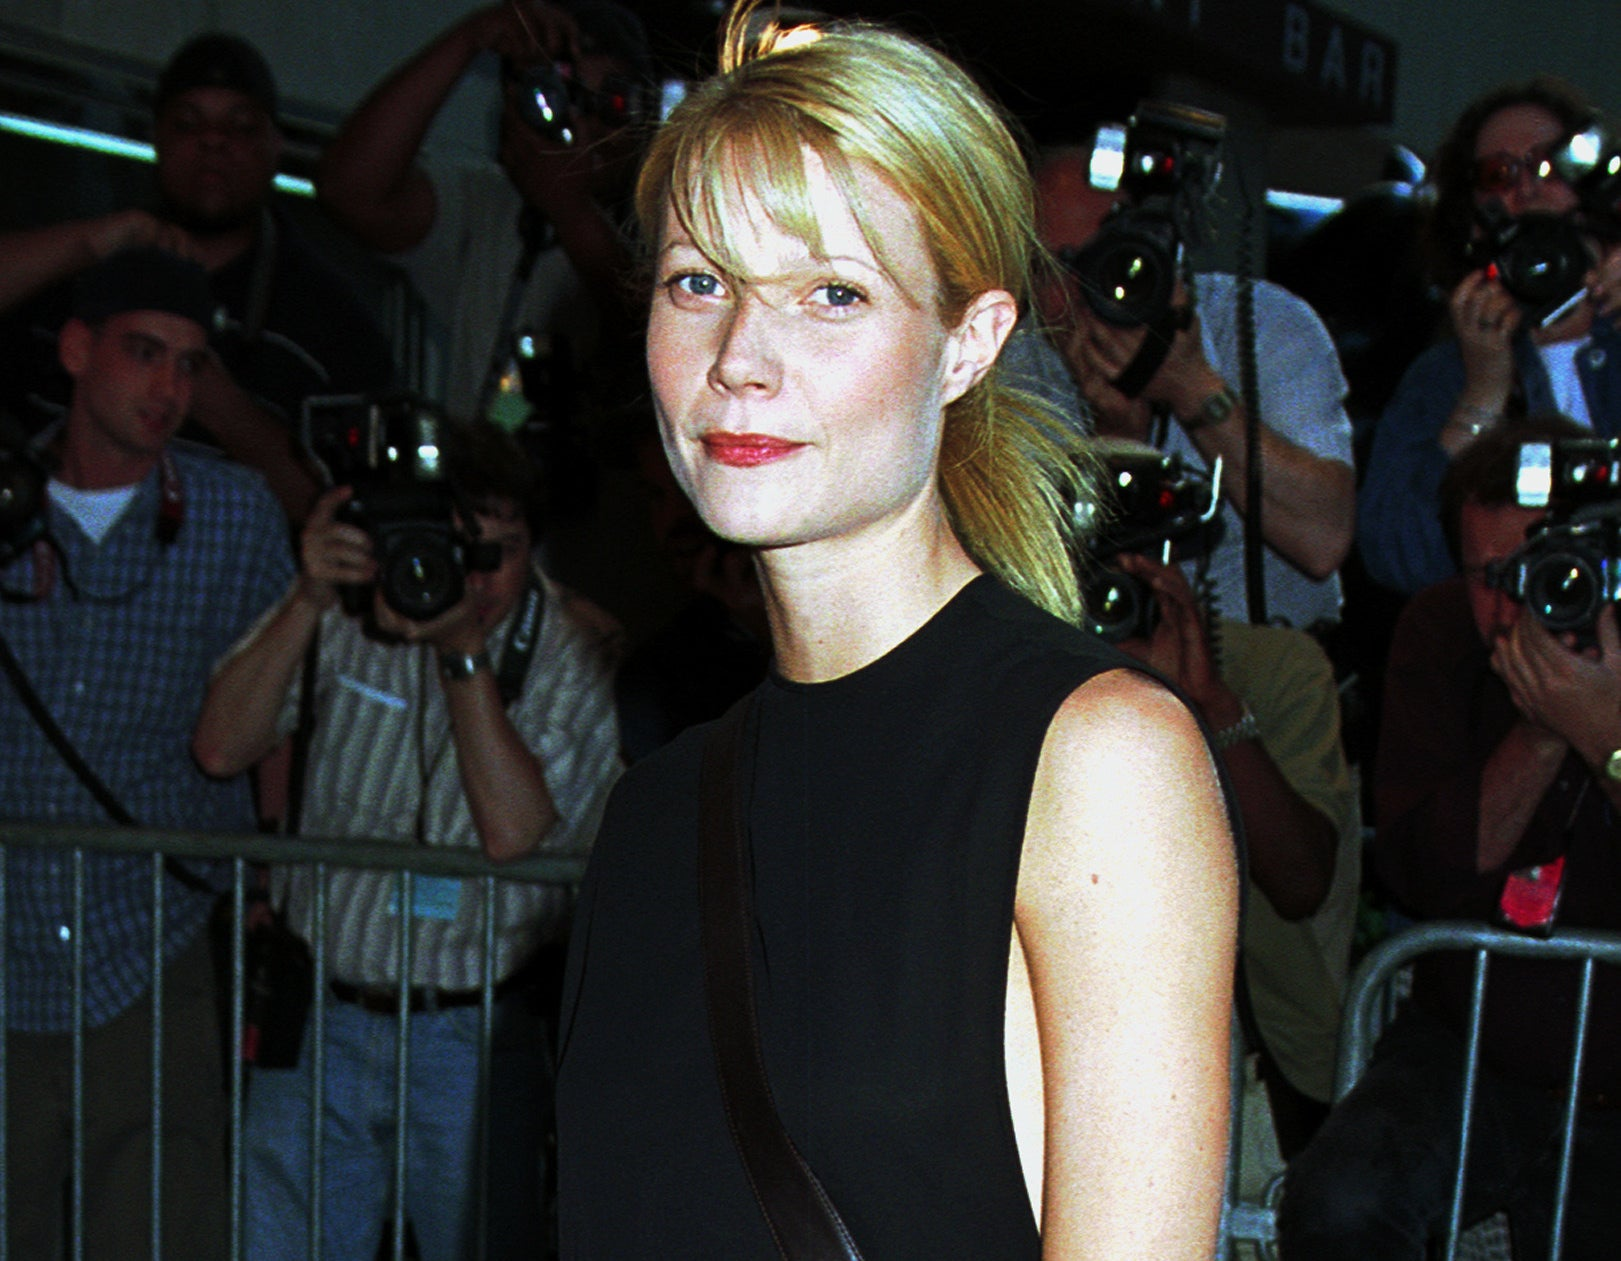 Gwyneth has a subtle smile while attending a premiere in 2000